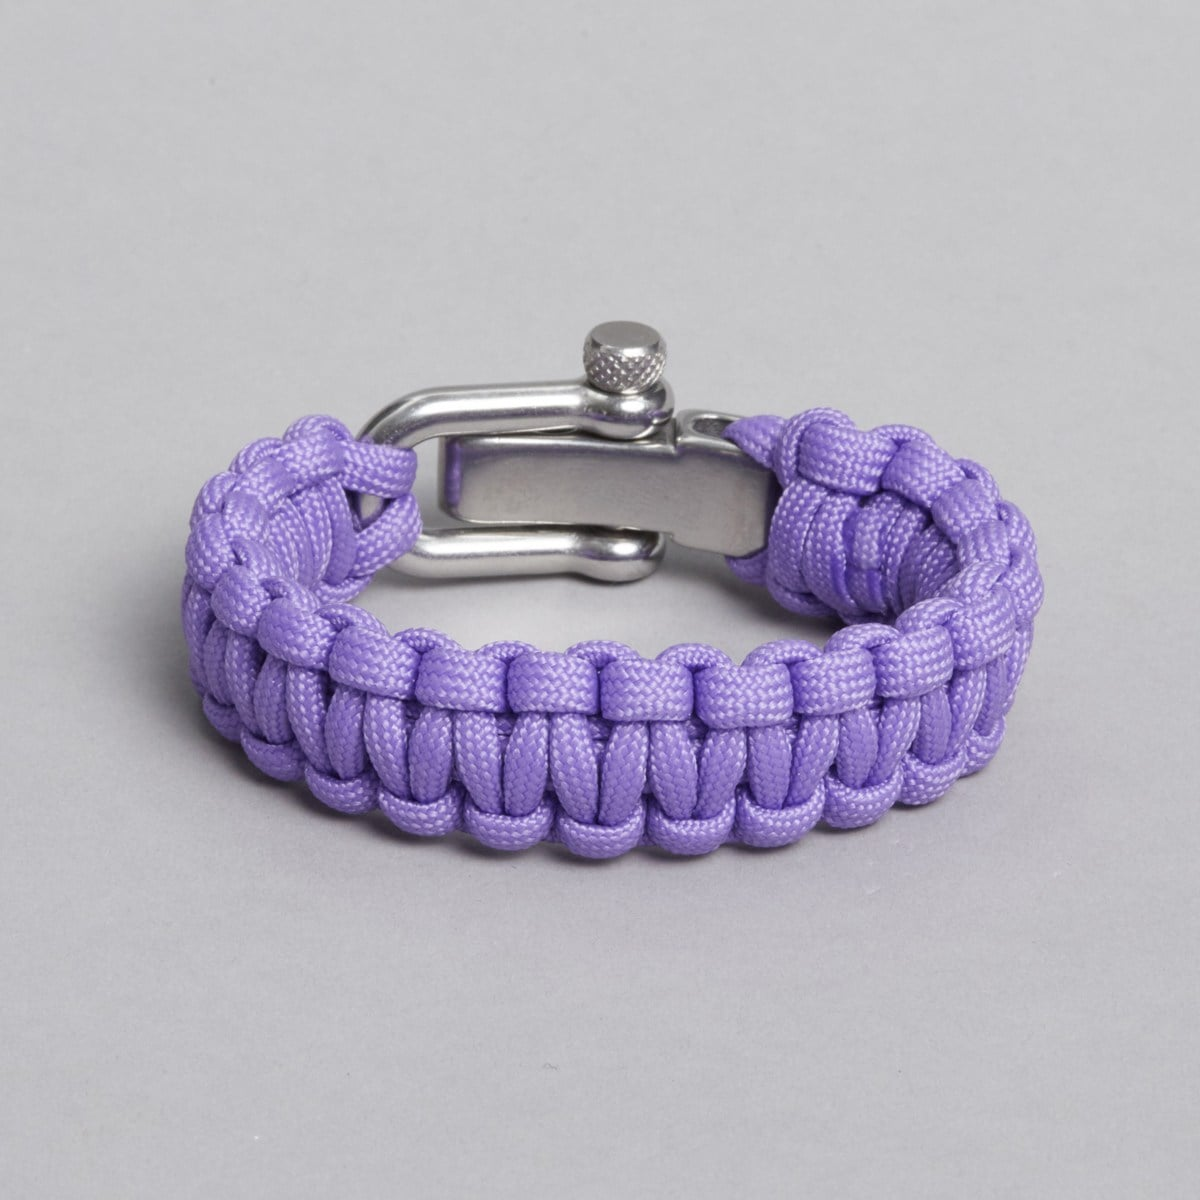 Pastel purple paracord, seen from behind.